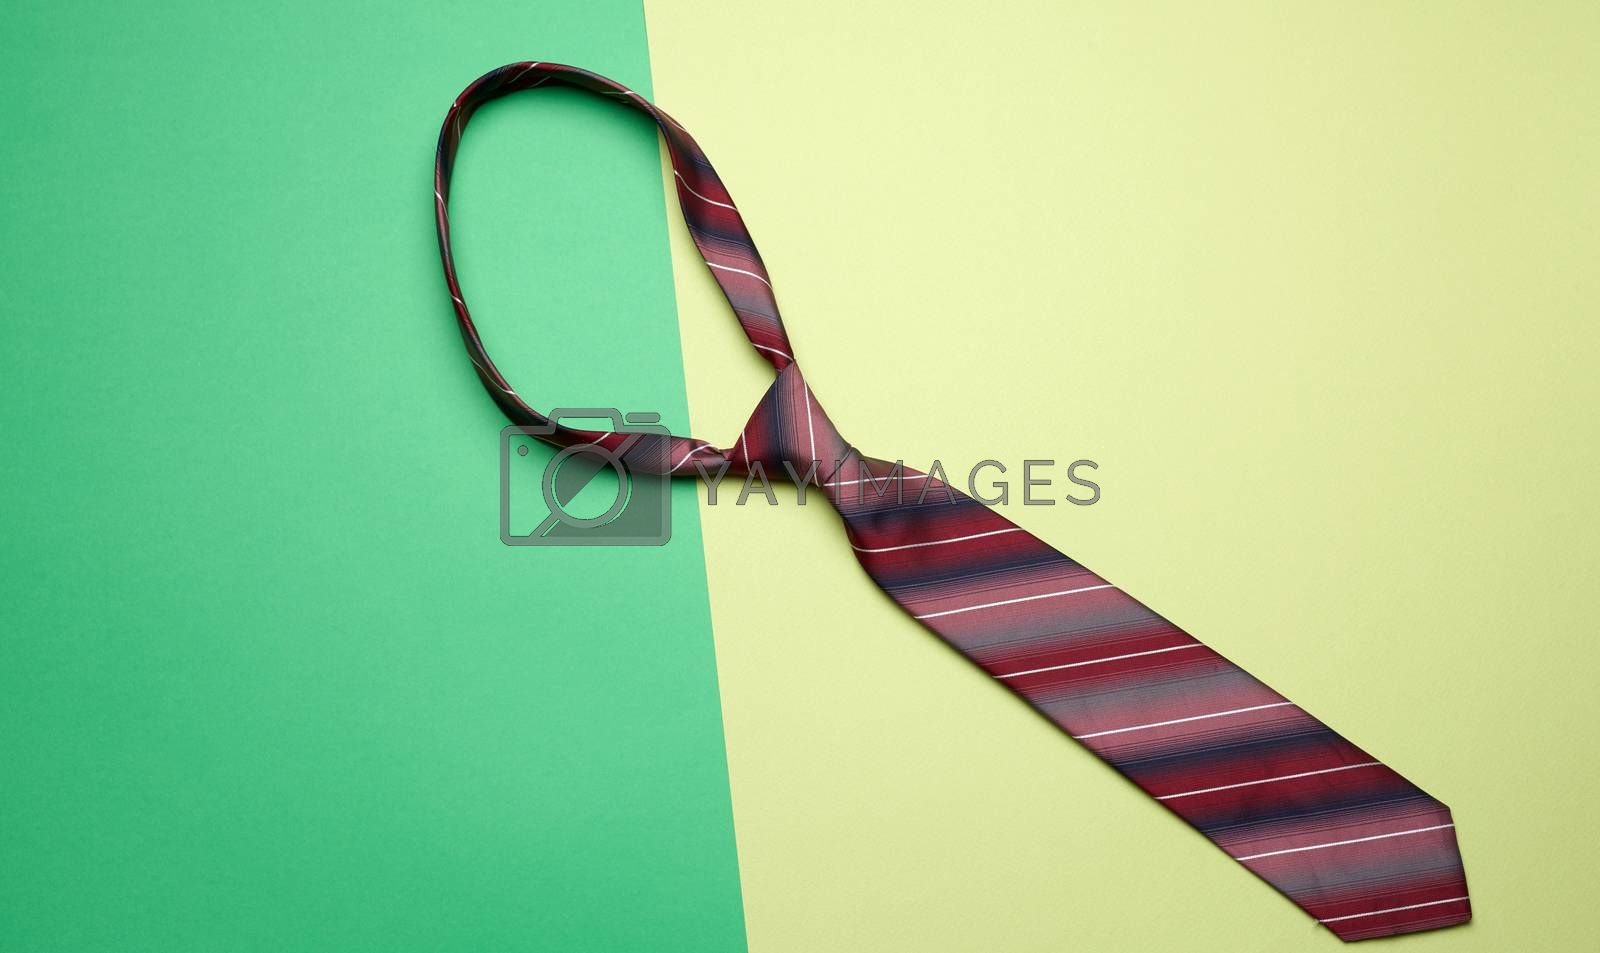 knotted silk man's tie on a green background, top view